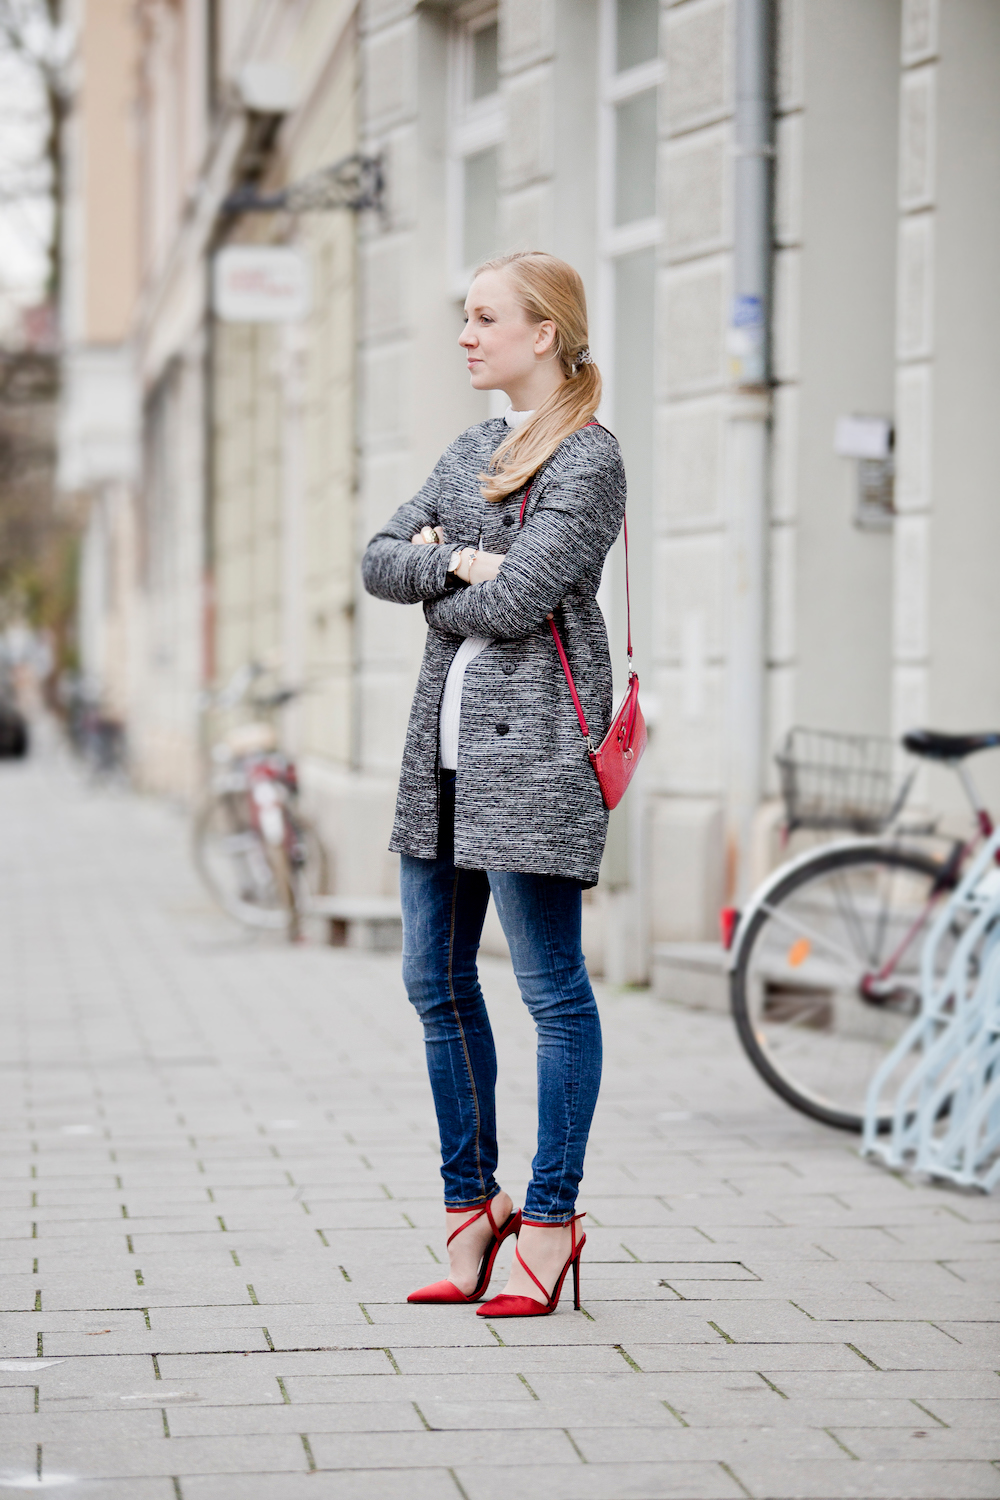 More & More Coat Red pumps| München Modeblog, German Fashion Blog, Fashionblogger, new trends